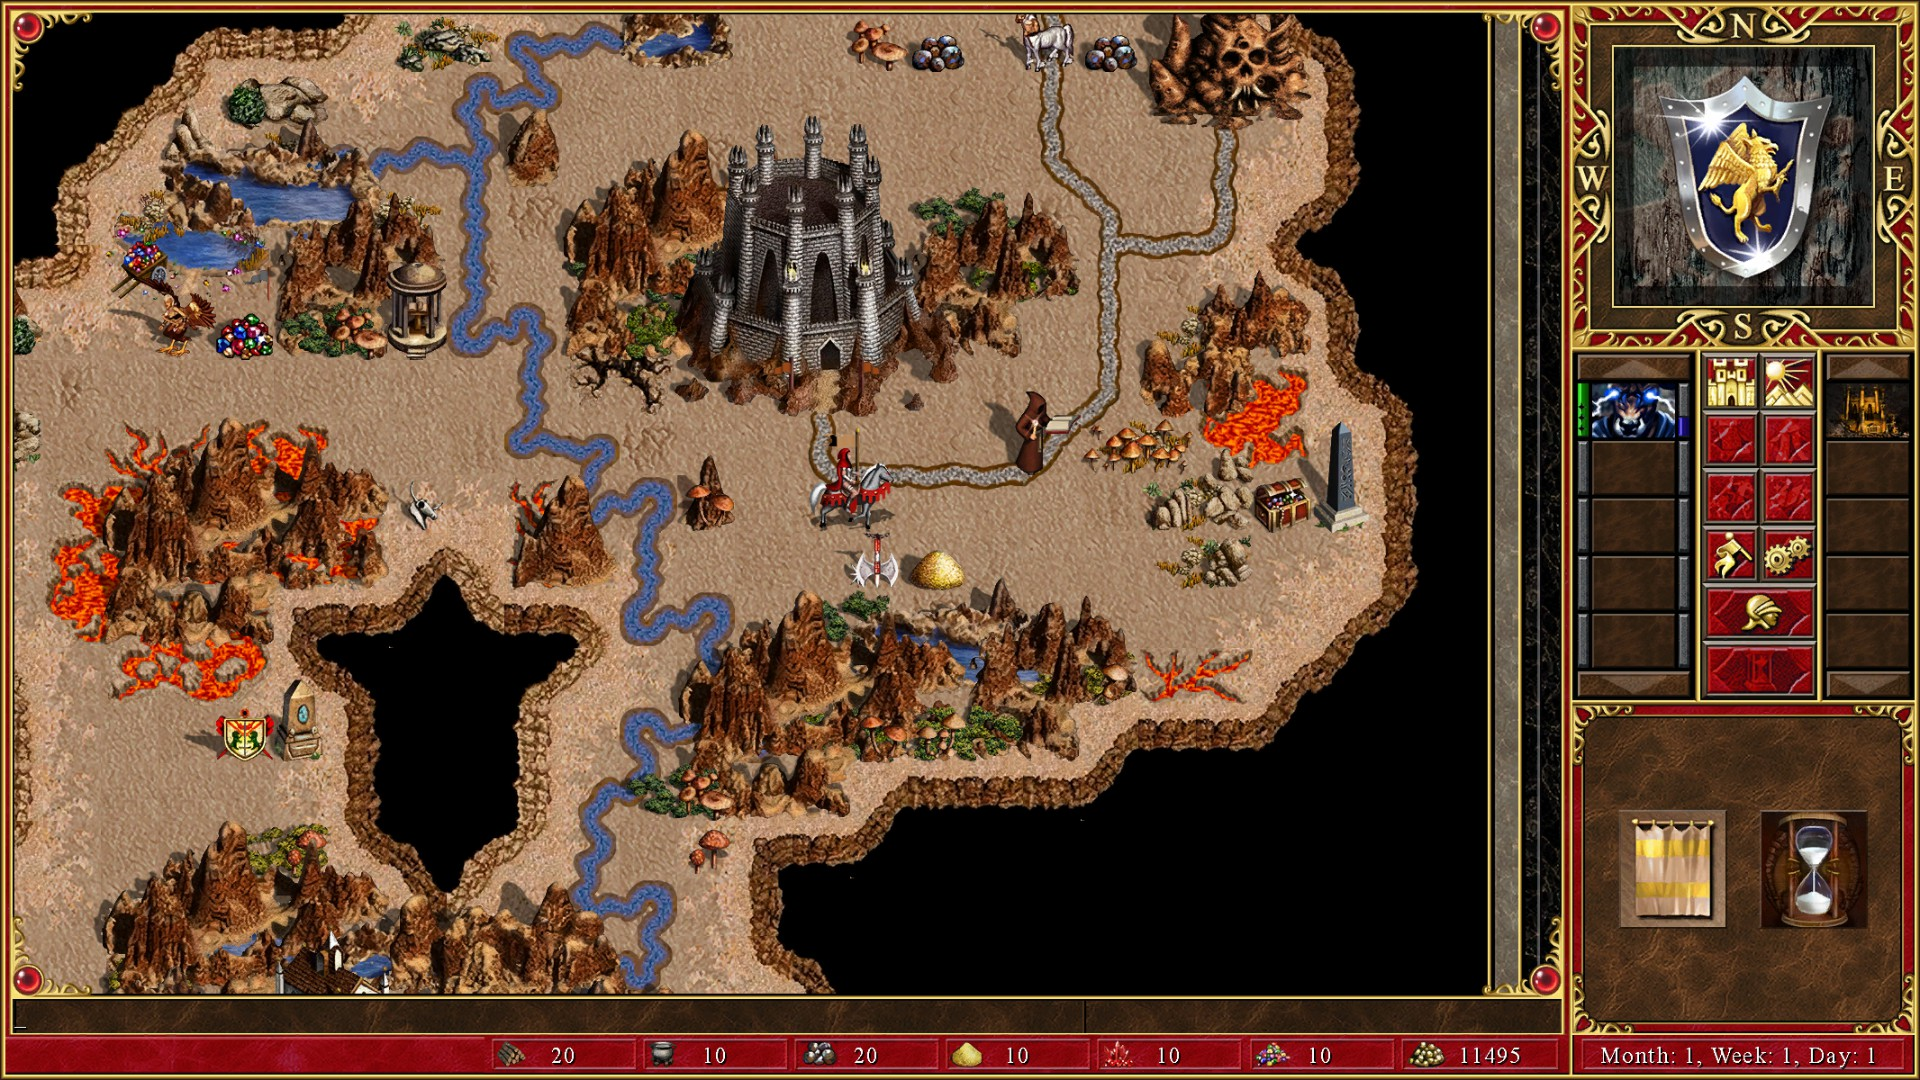 Heroes of might and magic 4 winds of war cheats